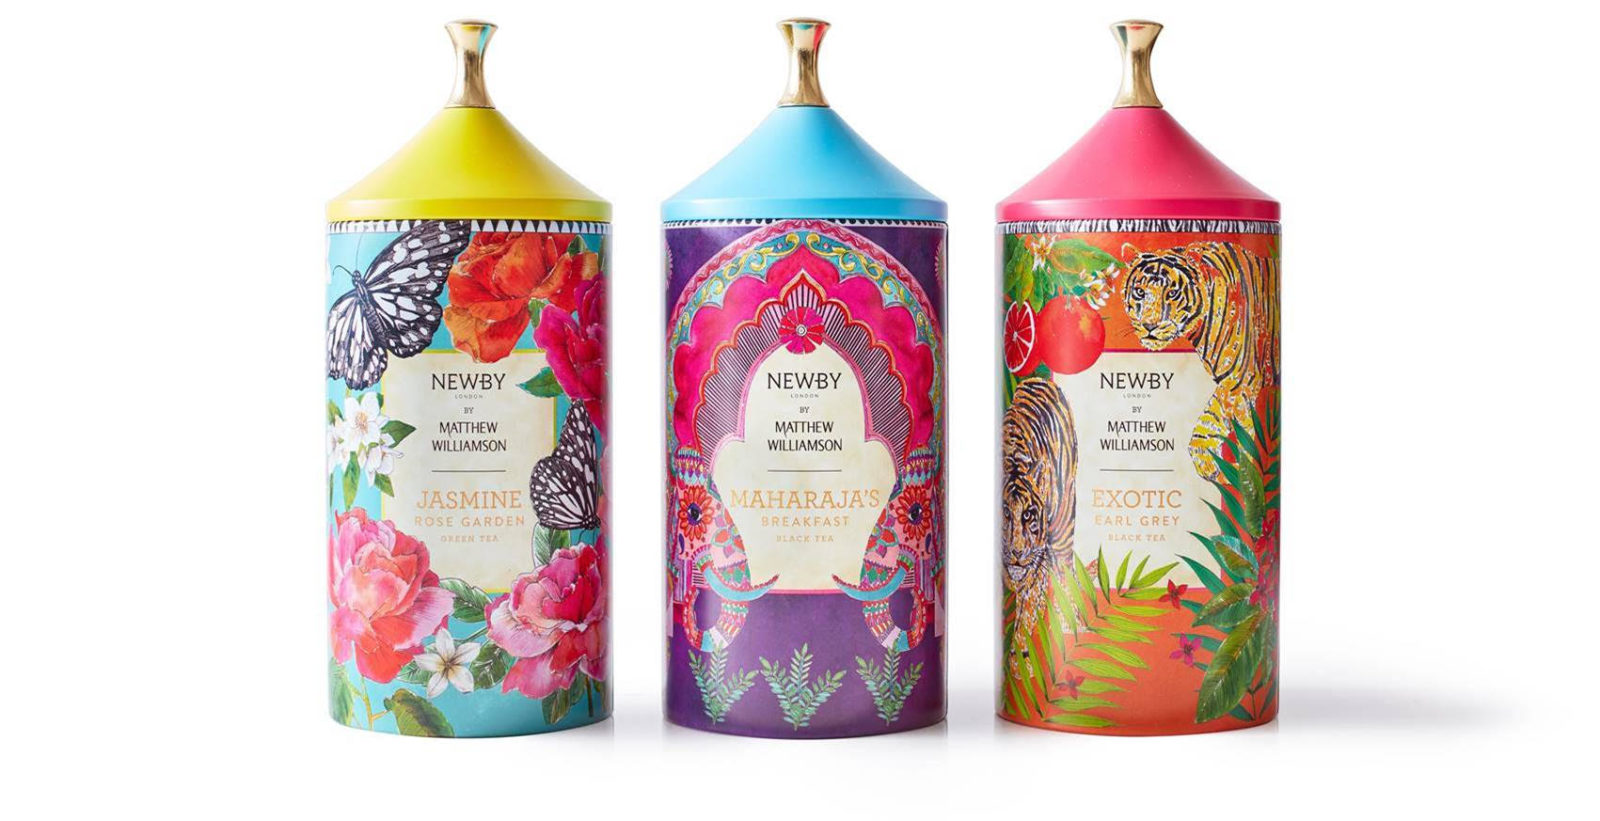 NEWBY TEAS DÉVOILE UNE COLLABORATION EXCLUSIVE AVEC MATTHEW WILLIAMSON, STYLISTE ANGLAIS ICONIQUE